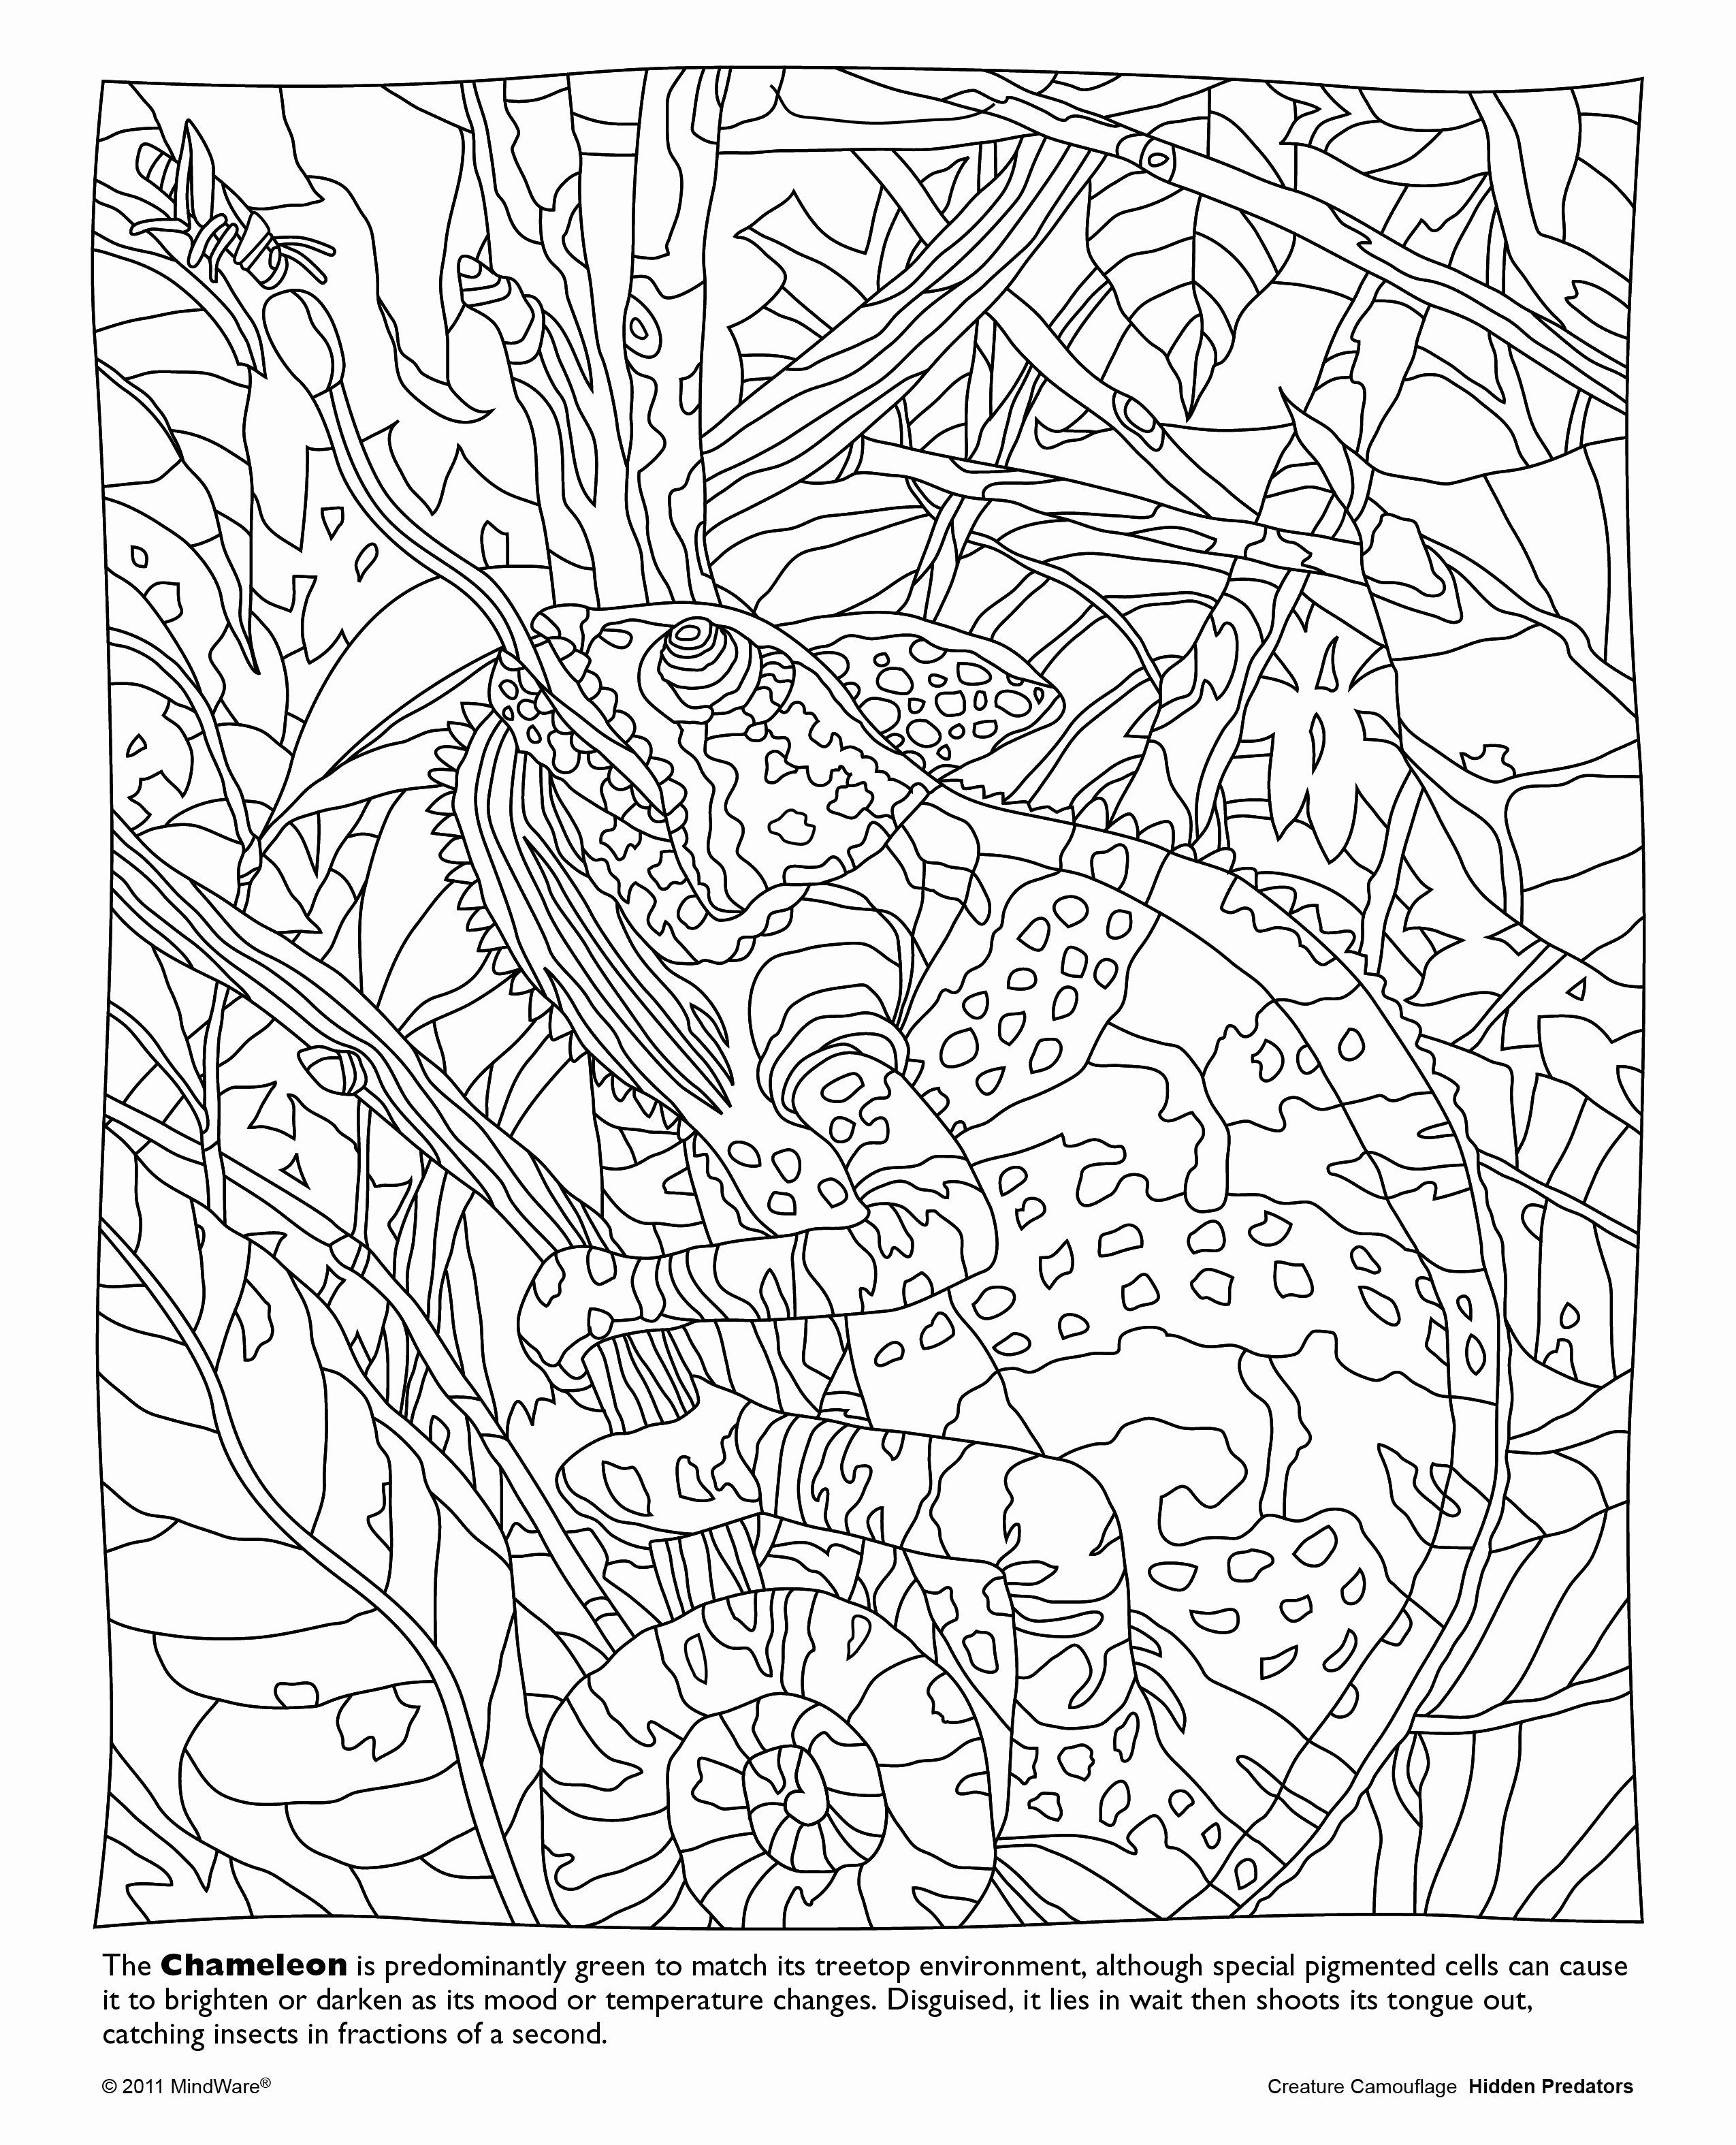 Bearded Dragon Coloring Page Fresh Bearded Dragon Coloring Page At Getcolorings In 2020 Dragon Coloring Page Detailed Coloring Pages Coloring Pages